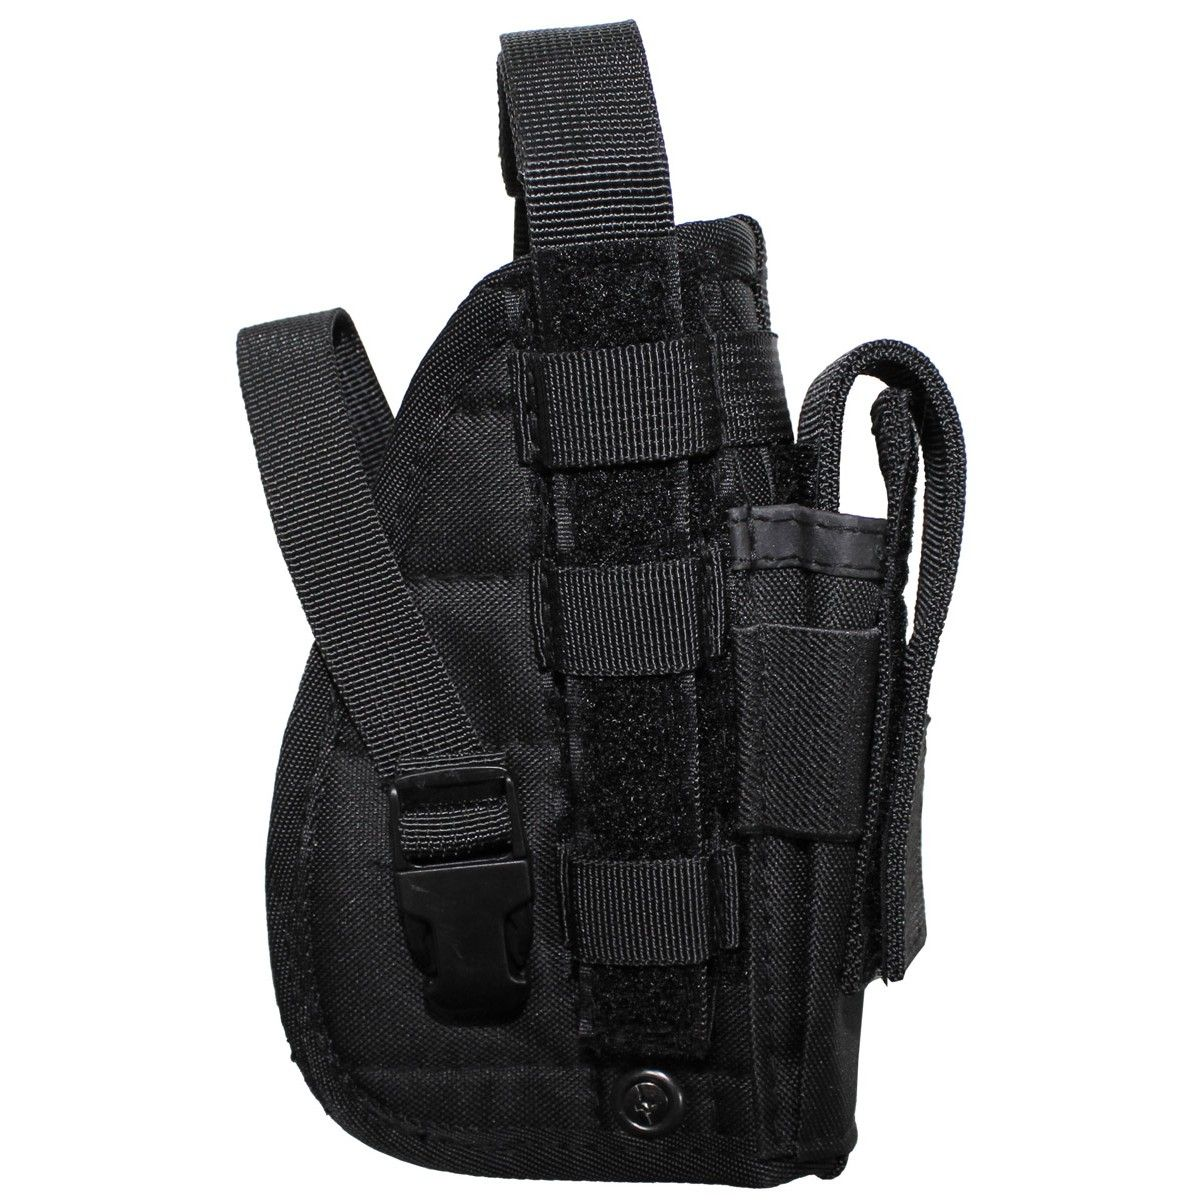 Mfh Tactical Molle Holster Black